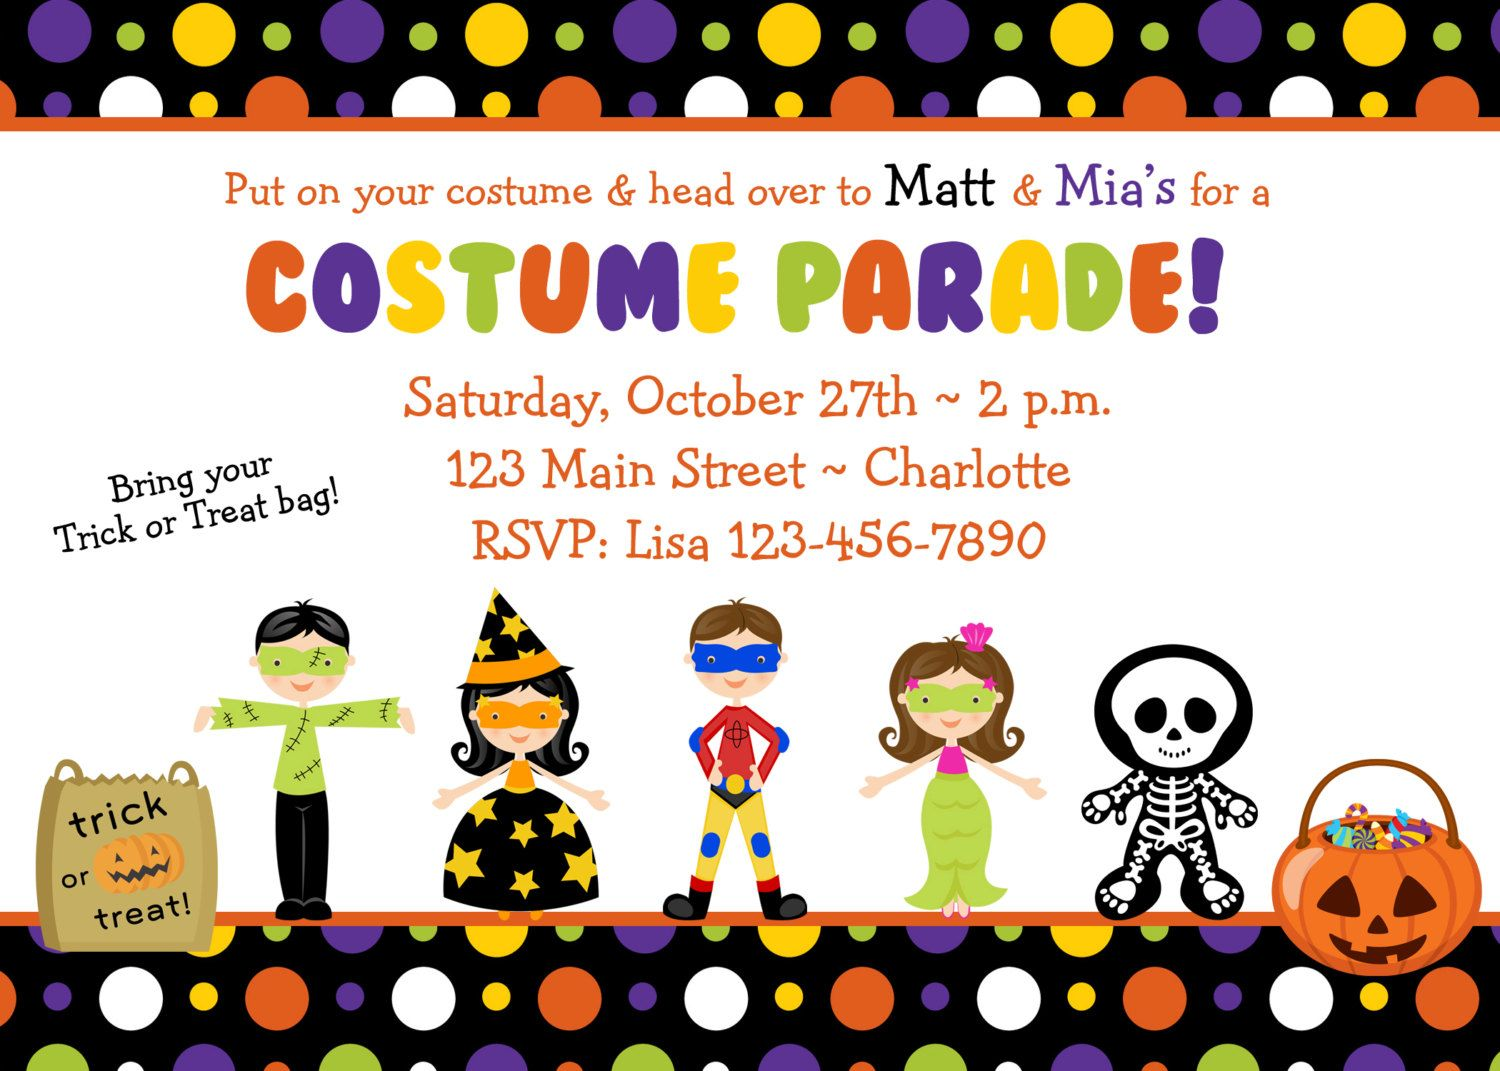 Halloween costume party invitation -- Costume Parade Party ...